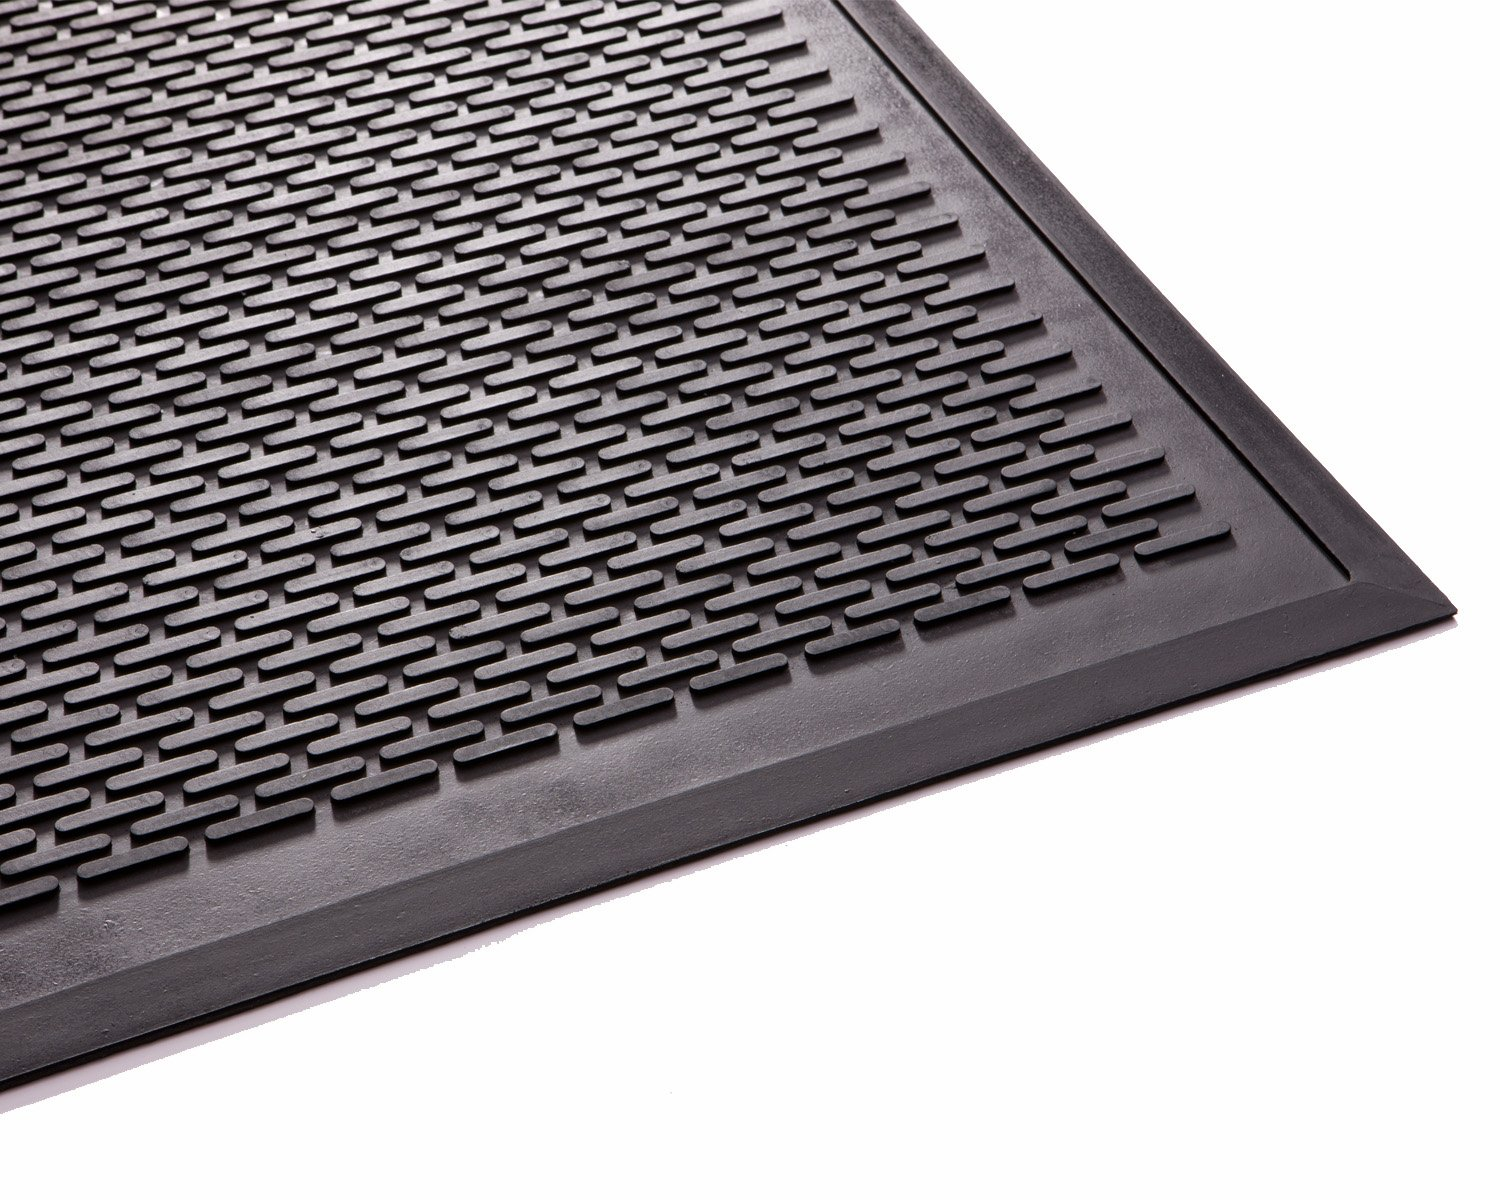 Guardian Clean Step Scraper Outdoor Floor Mat, Natural Rubber, 3'x10'', Black, Ideal for any outside entryway, Scrapes Shoes Clean of Dirt and Grime by Guardian